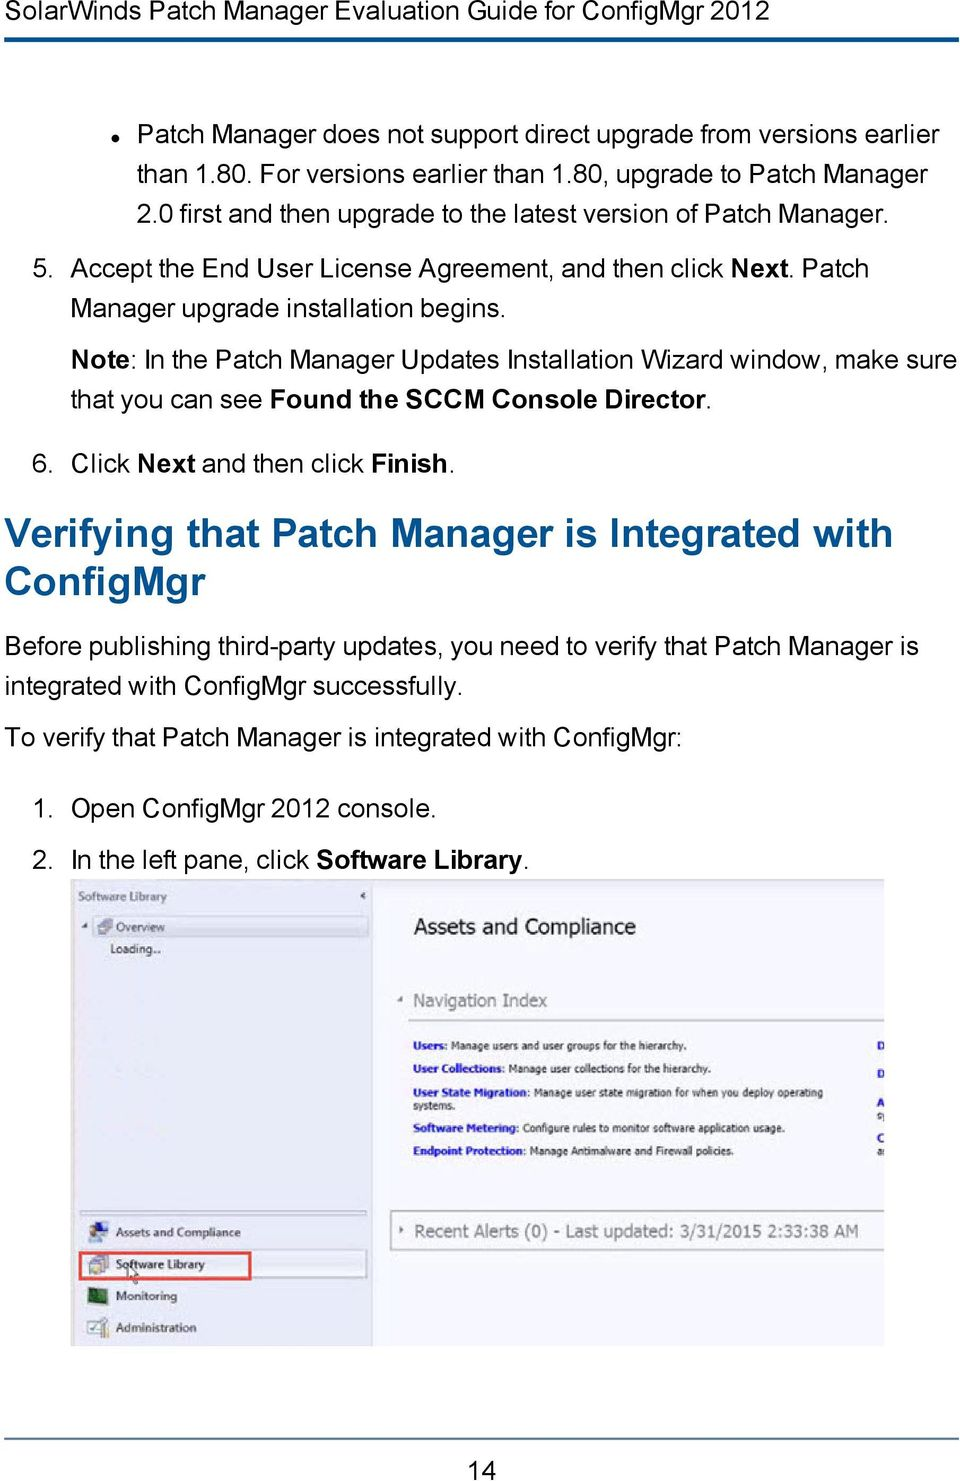 Note: In the Patch Manager Updates Installation Wizard window, make sure that you can see Found the SCCM Console Director. 6. Click Next and then click Finish.